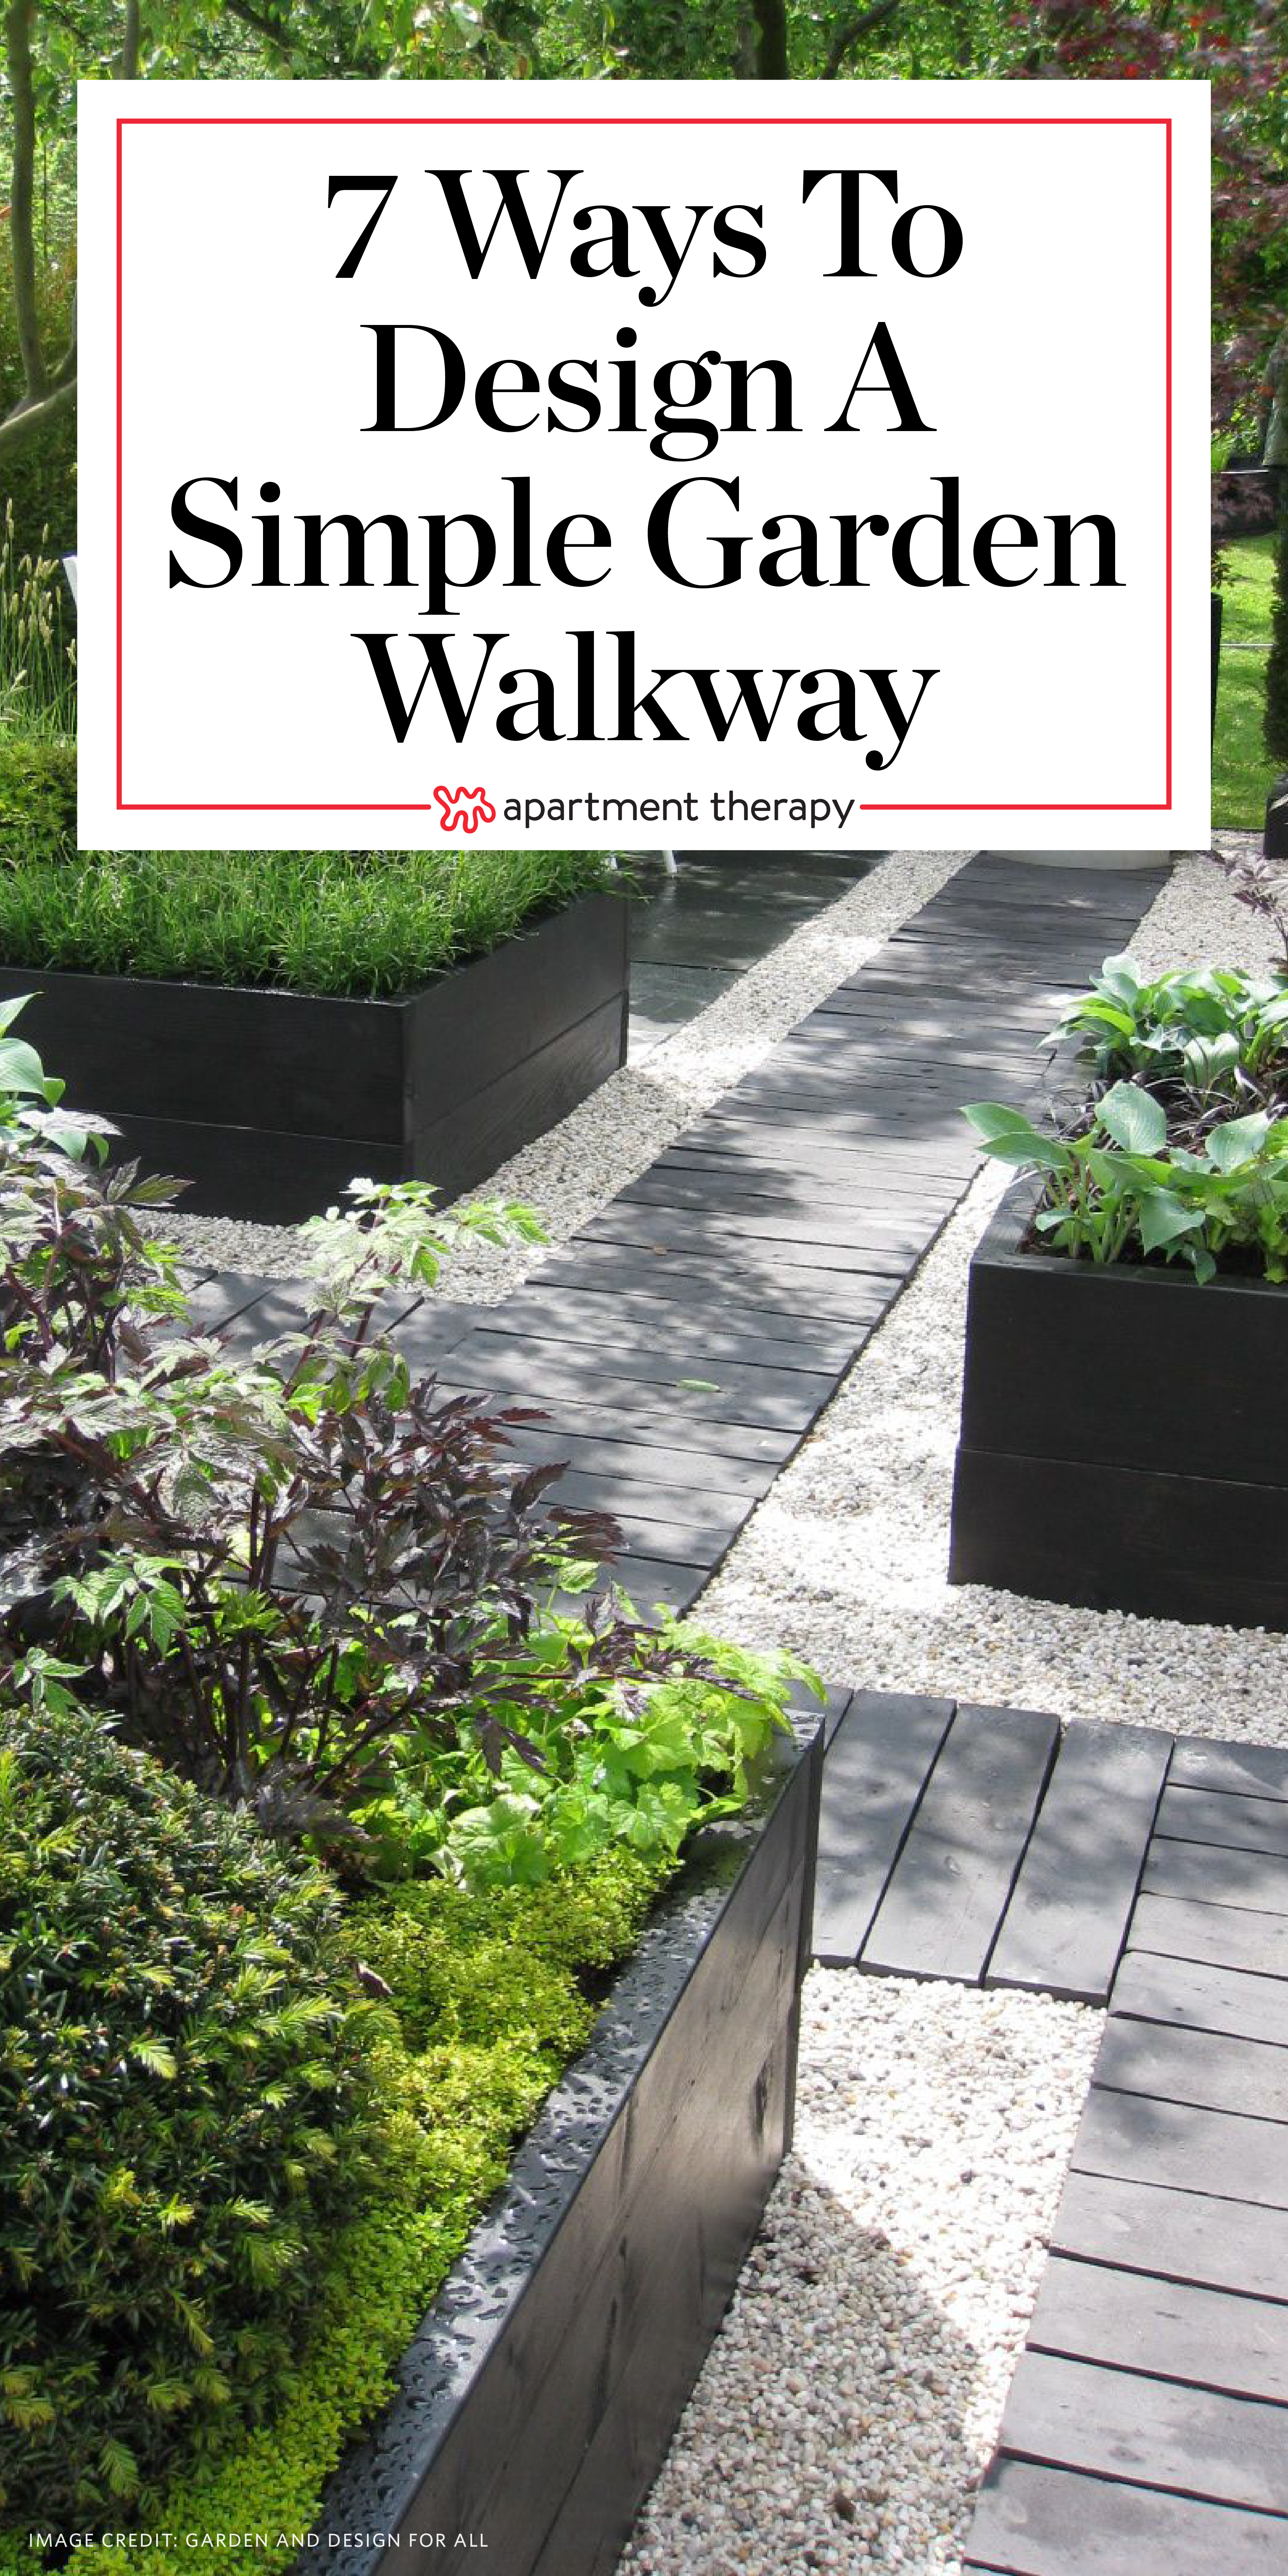 7 Different Ways To Design A Simple Garden Walkway Apartment Therapy